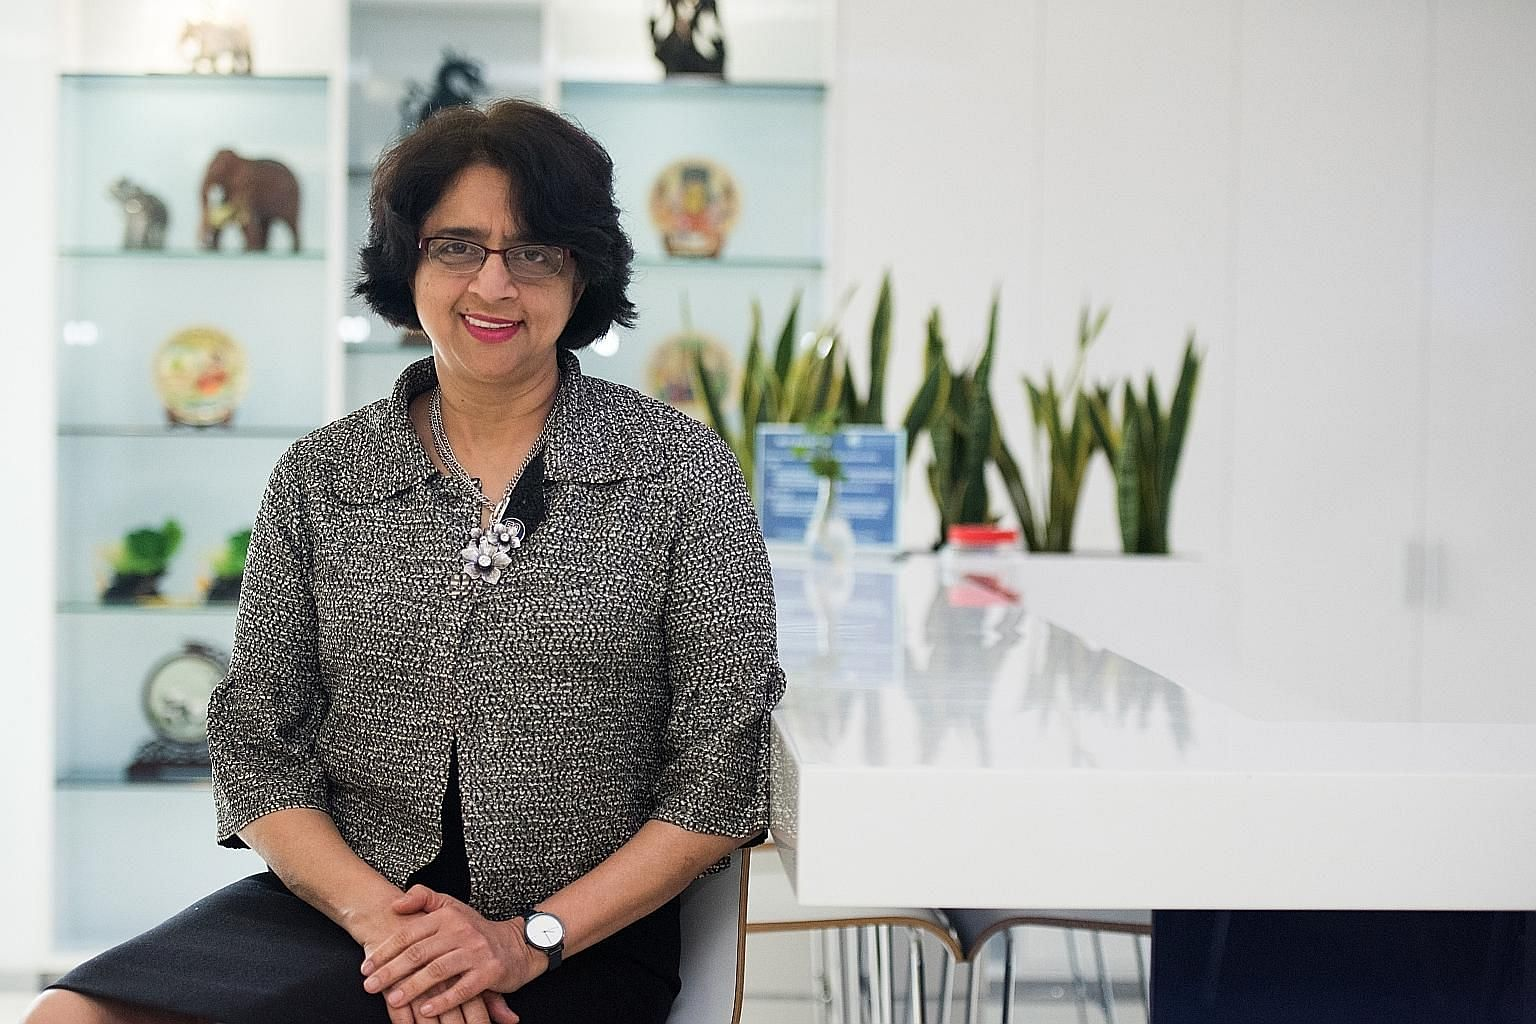 Dr Siva Kumari, director-general of the International Baccalaureate, says nations are researching the IB strategy and seeing if it can be implemented across the school system, and that Singapore had a huge influence in popularising the programme. Cur